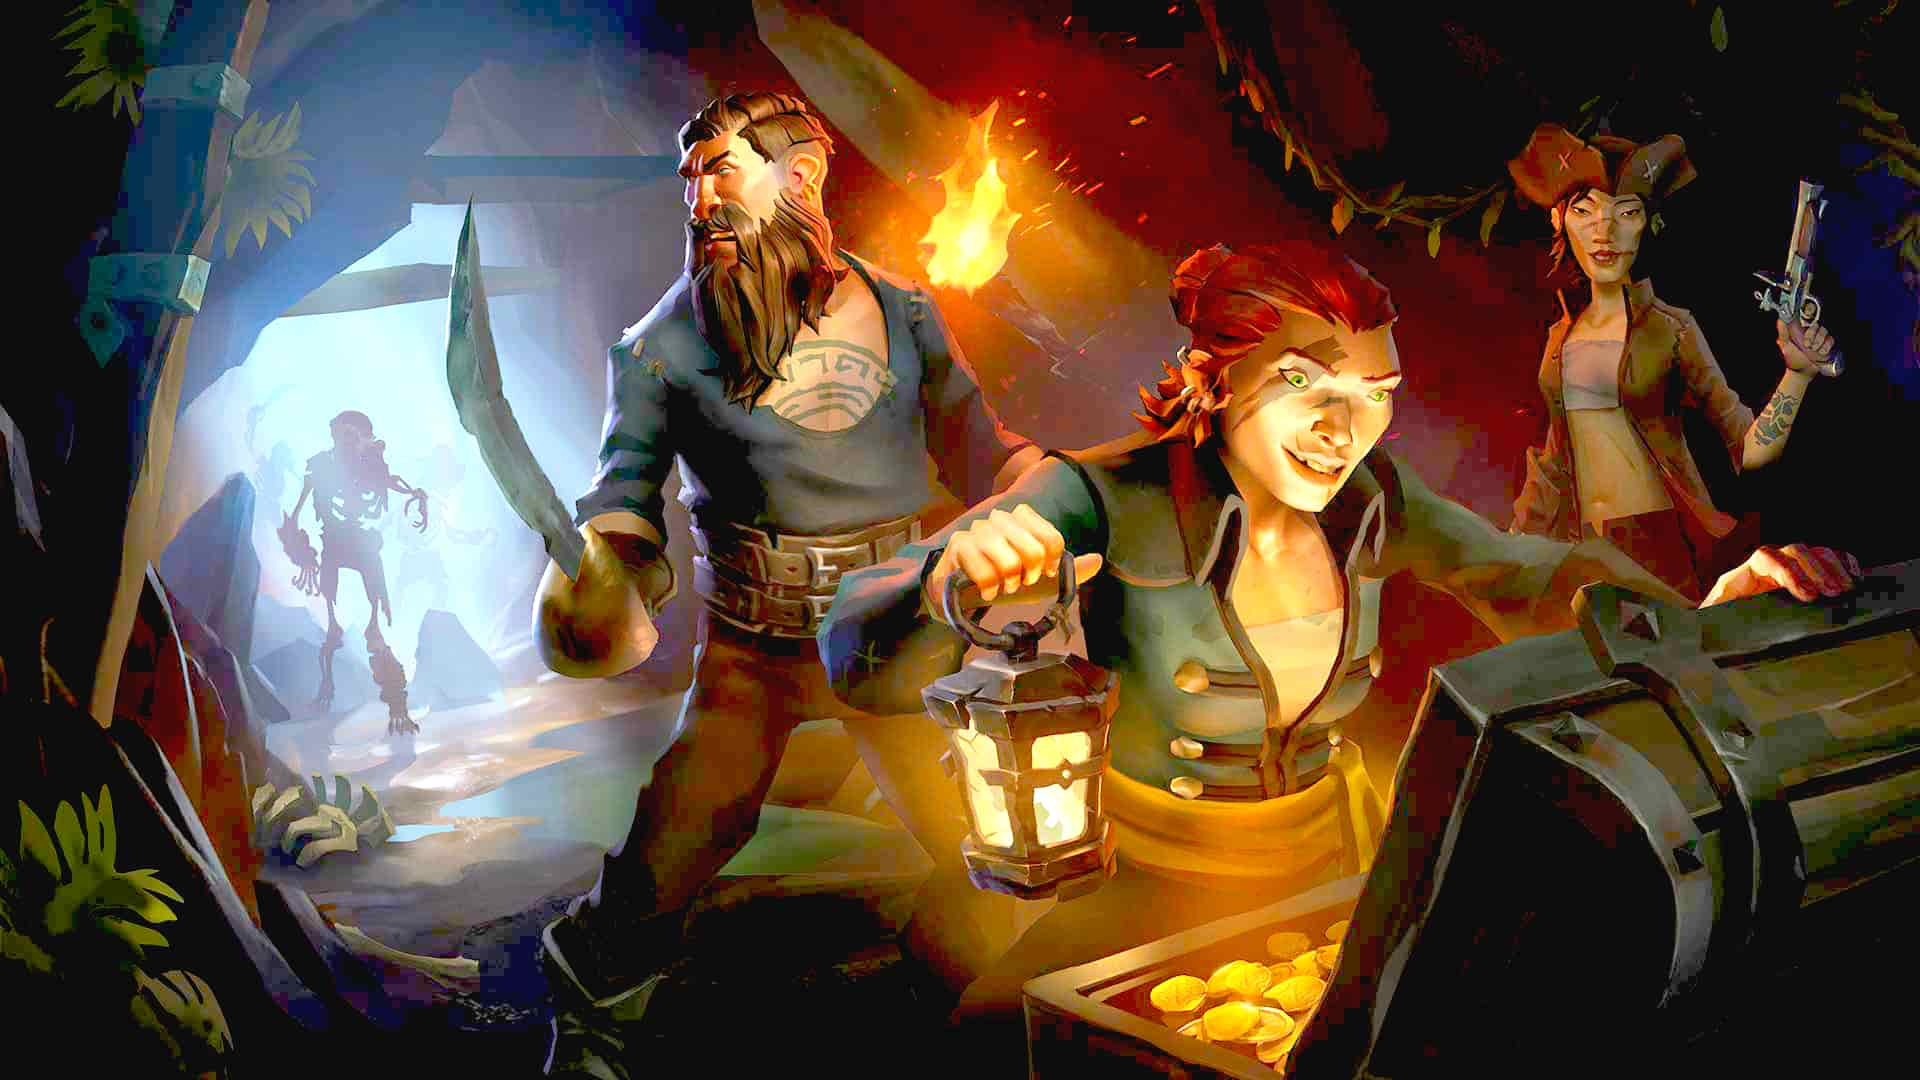 Sea of Thieves Update 1.05 Is Live, Improves Performance and Implements Fixes